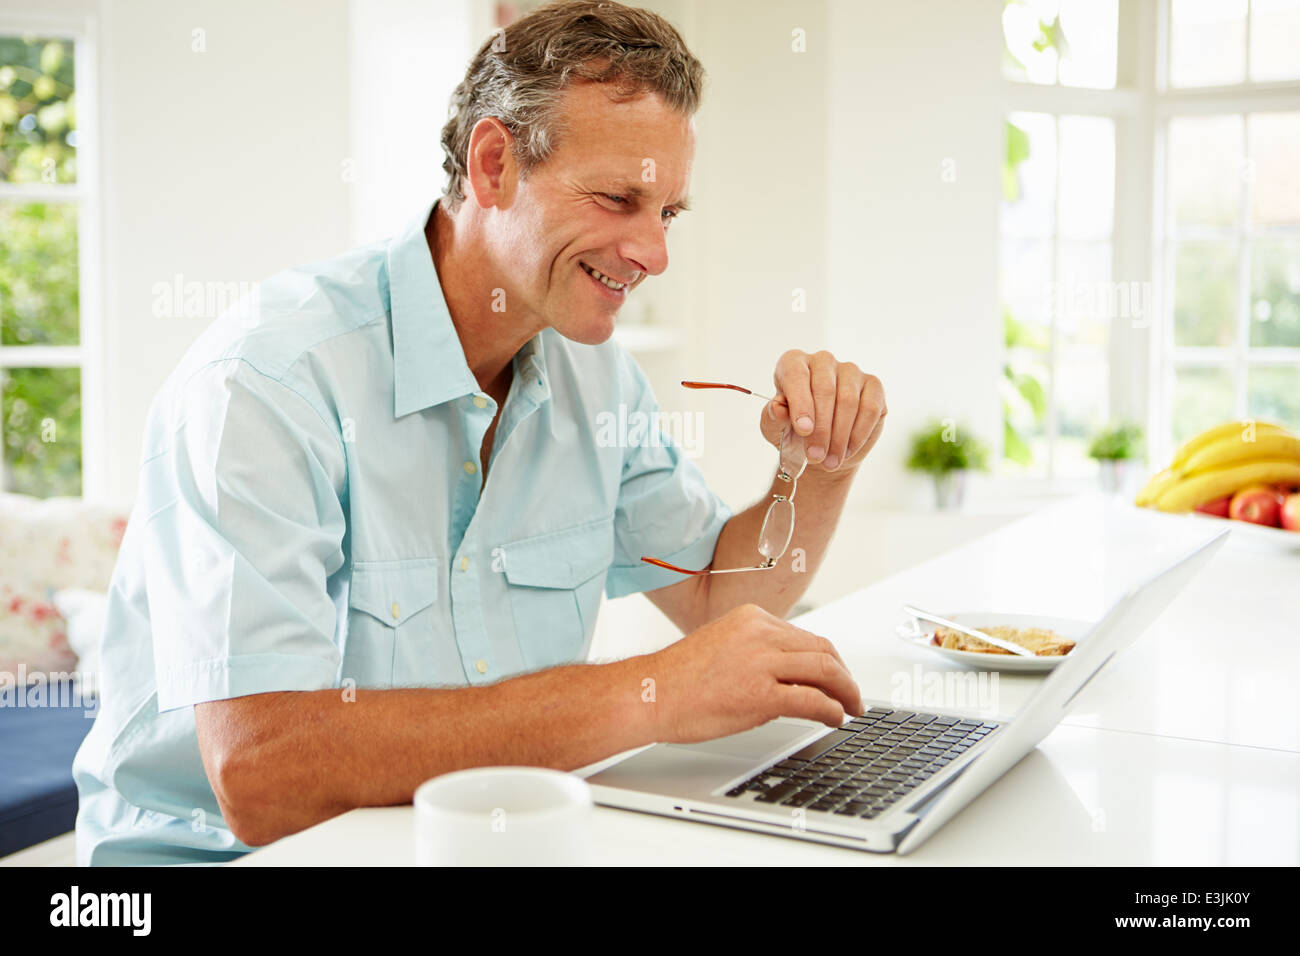 Middle Aged Man Using Laptop Over Breakfast - Stock Image